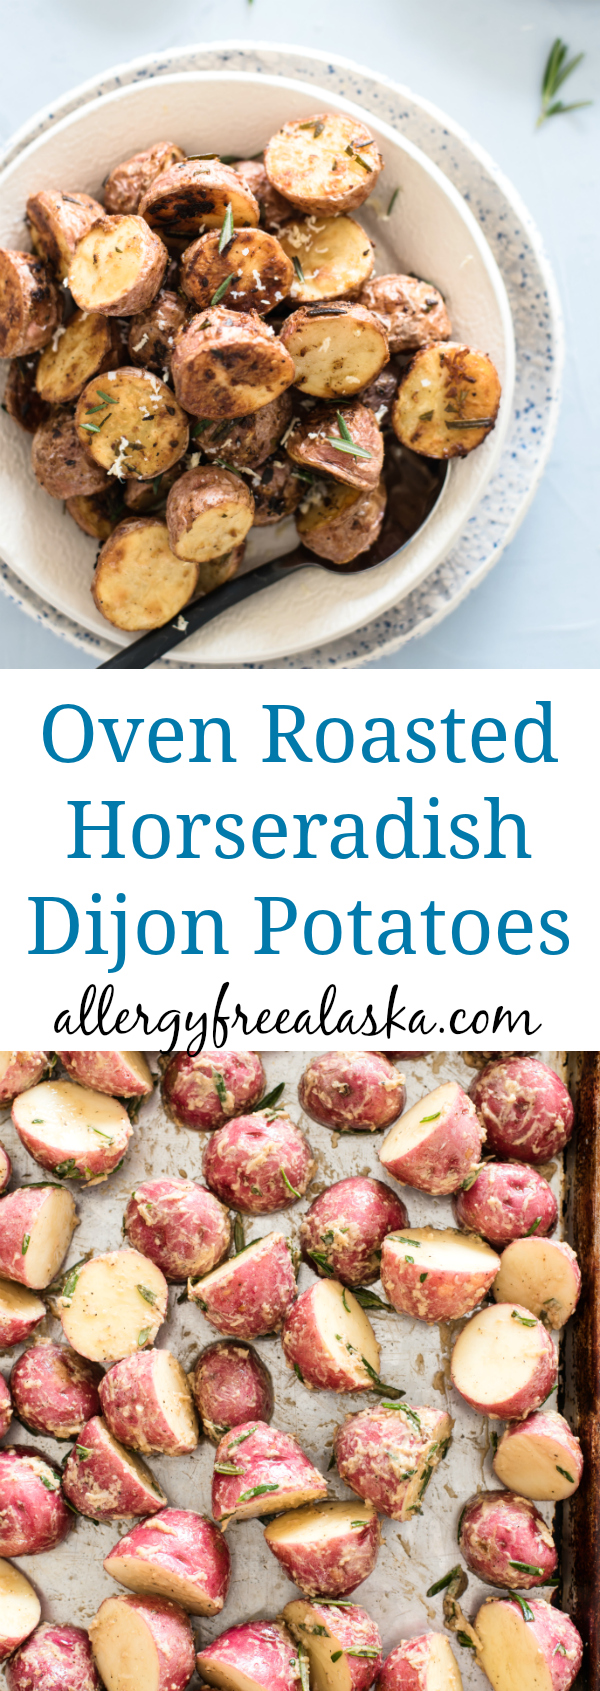 Oven Roasted Horseradish Dijon Potatoes